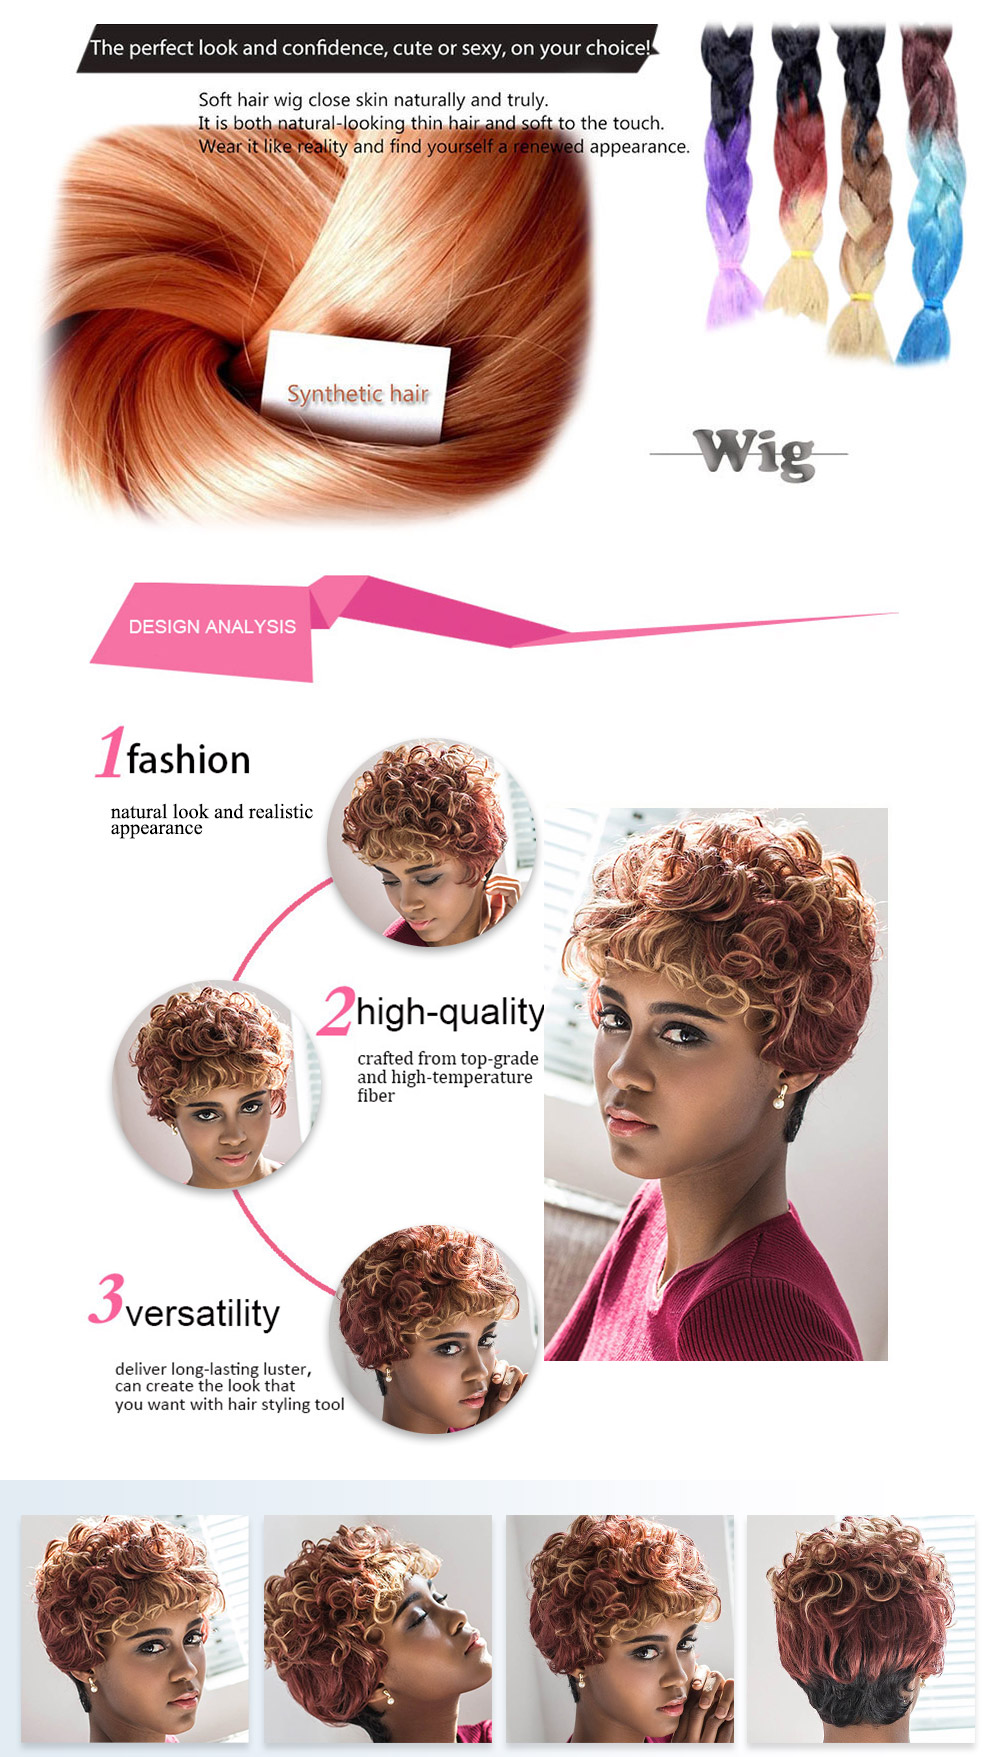 AISIHAIR Stunning Short Round Curly Full Bangs Mixed Color Wigs for Women